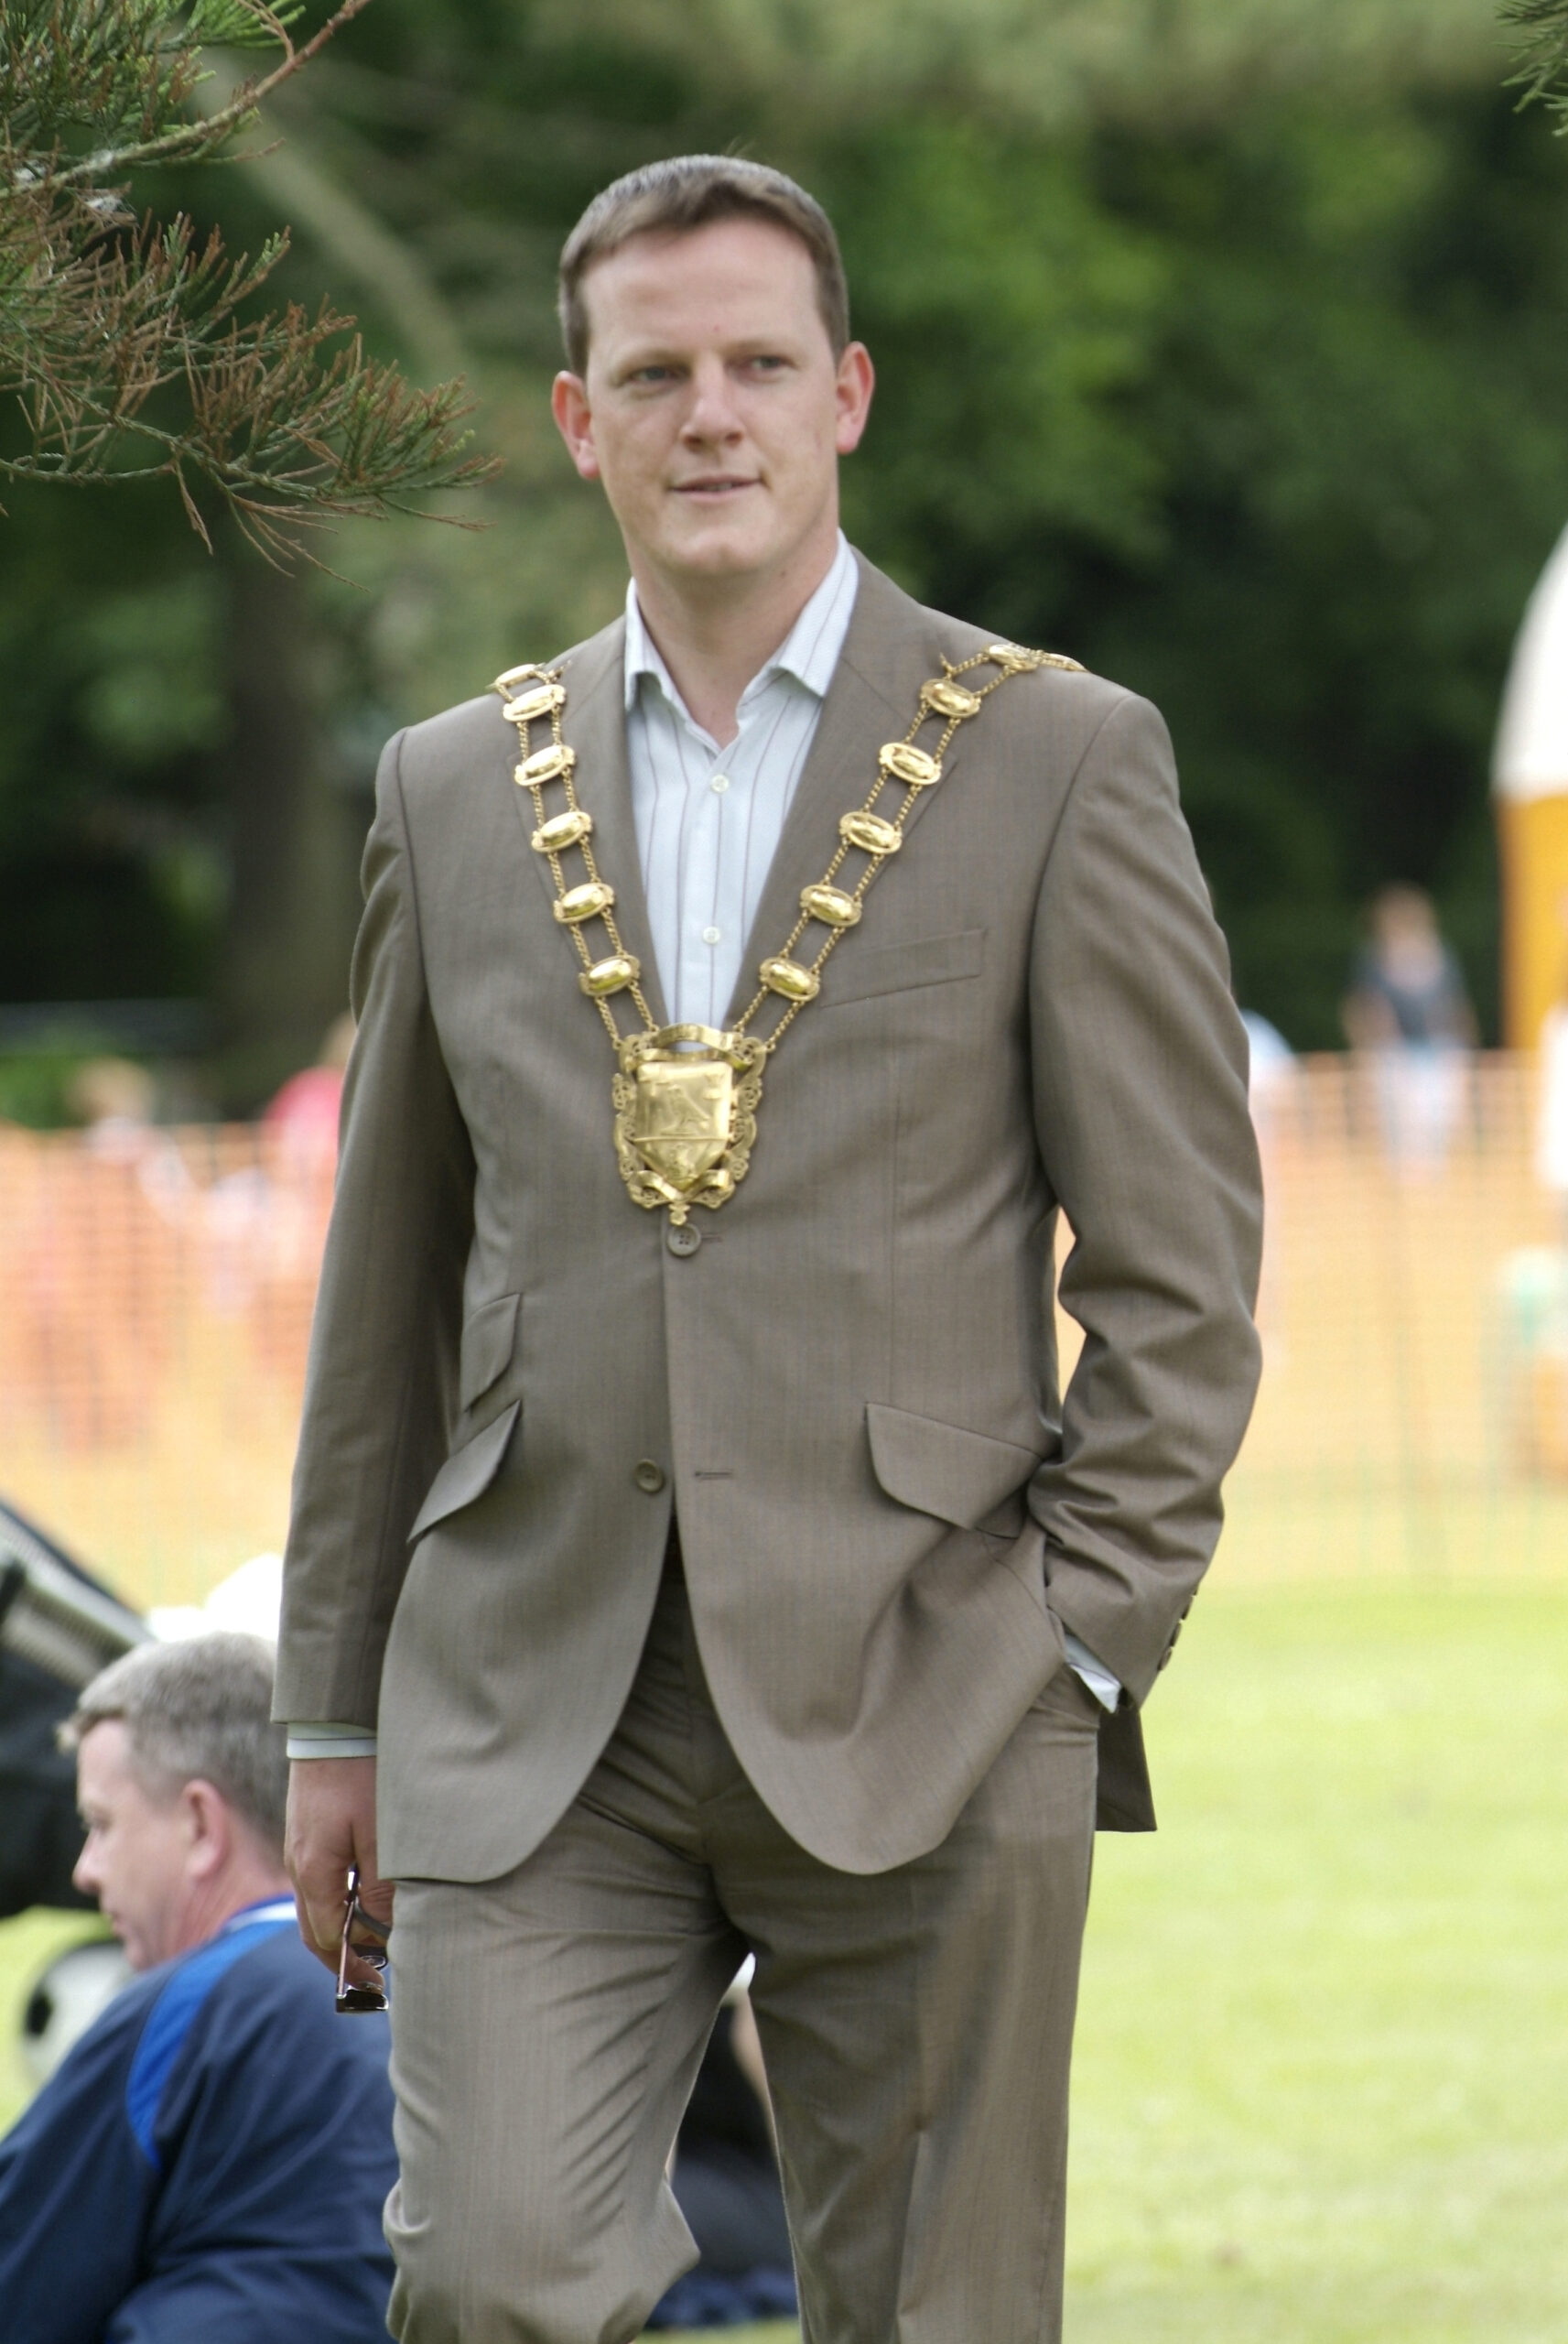 Elected Mayor of Fingal 2007